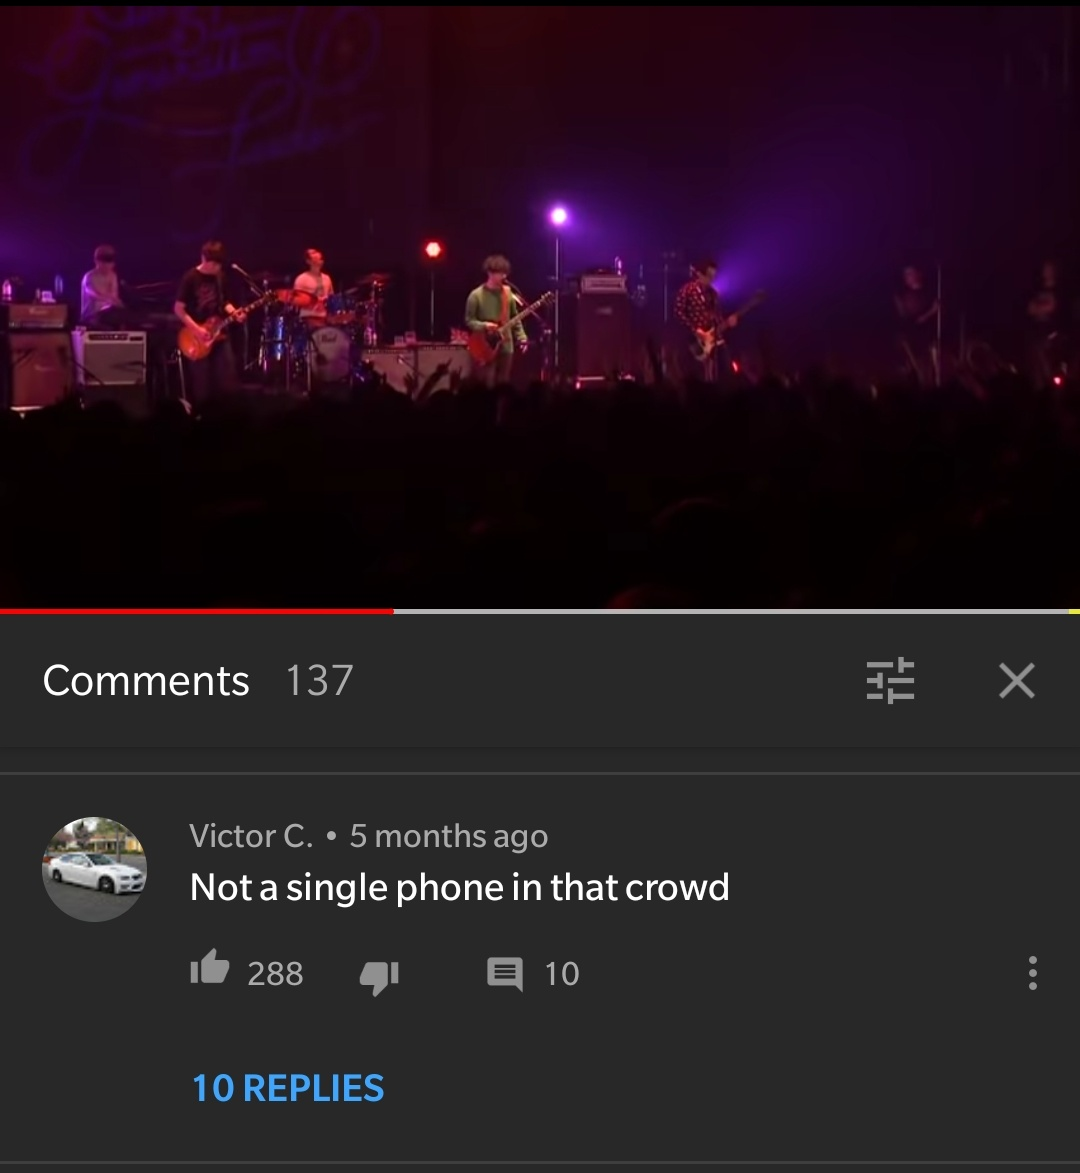 On a video of a live jrock band.